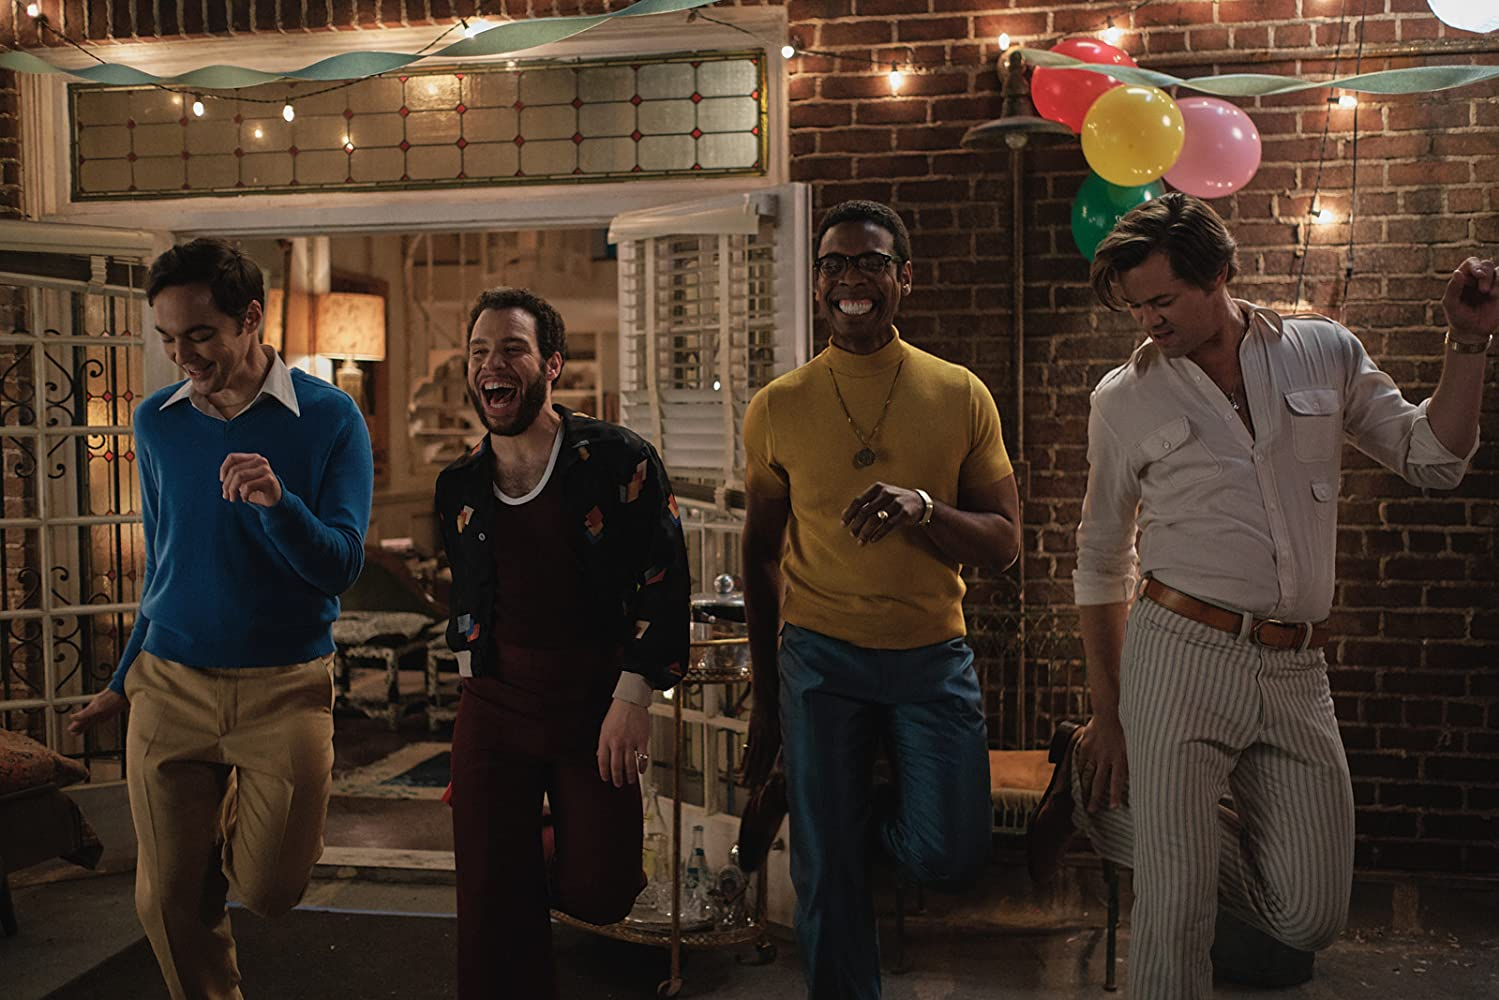 Still Image of Jim Parsons, Robin De Jesus, Michael Benjamin Washington & Andrew Rannells in THE BOYS IN THE BAND